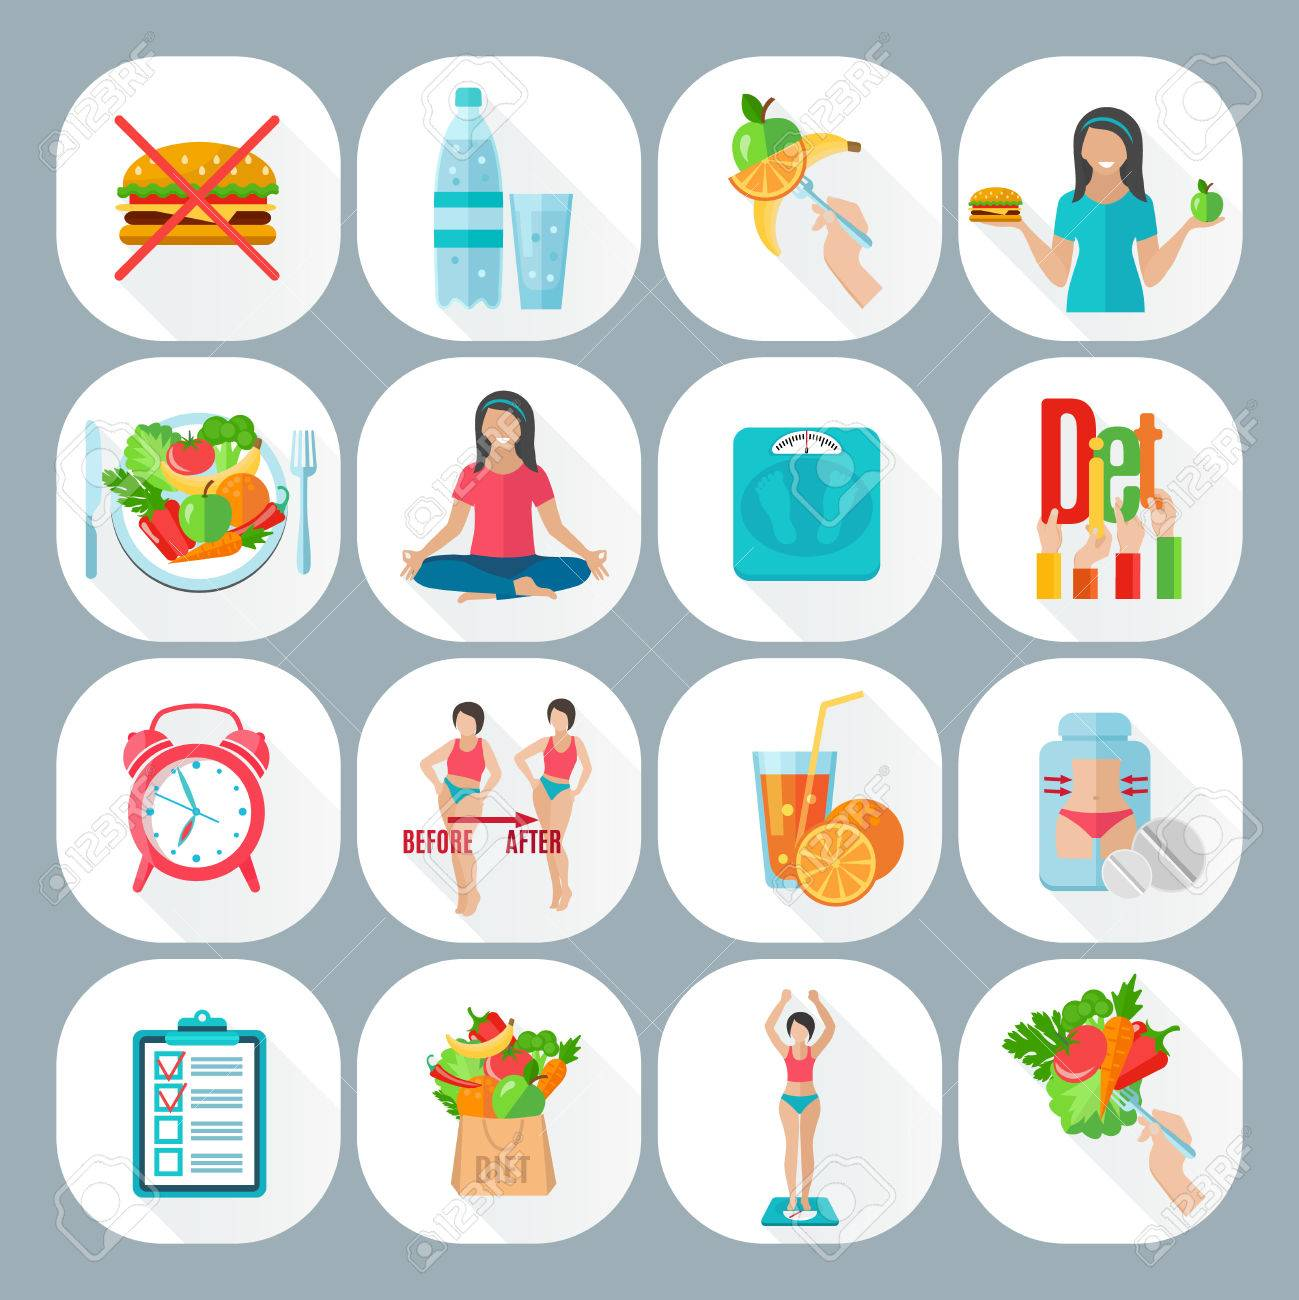 Diet plan for healthy life - Healthy Life Style Low Fat Vegetarian Diet Plan With Meditation Flat Icons Set Abstract Isolated Vector